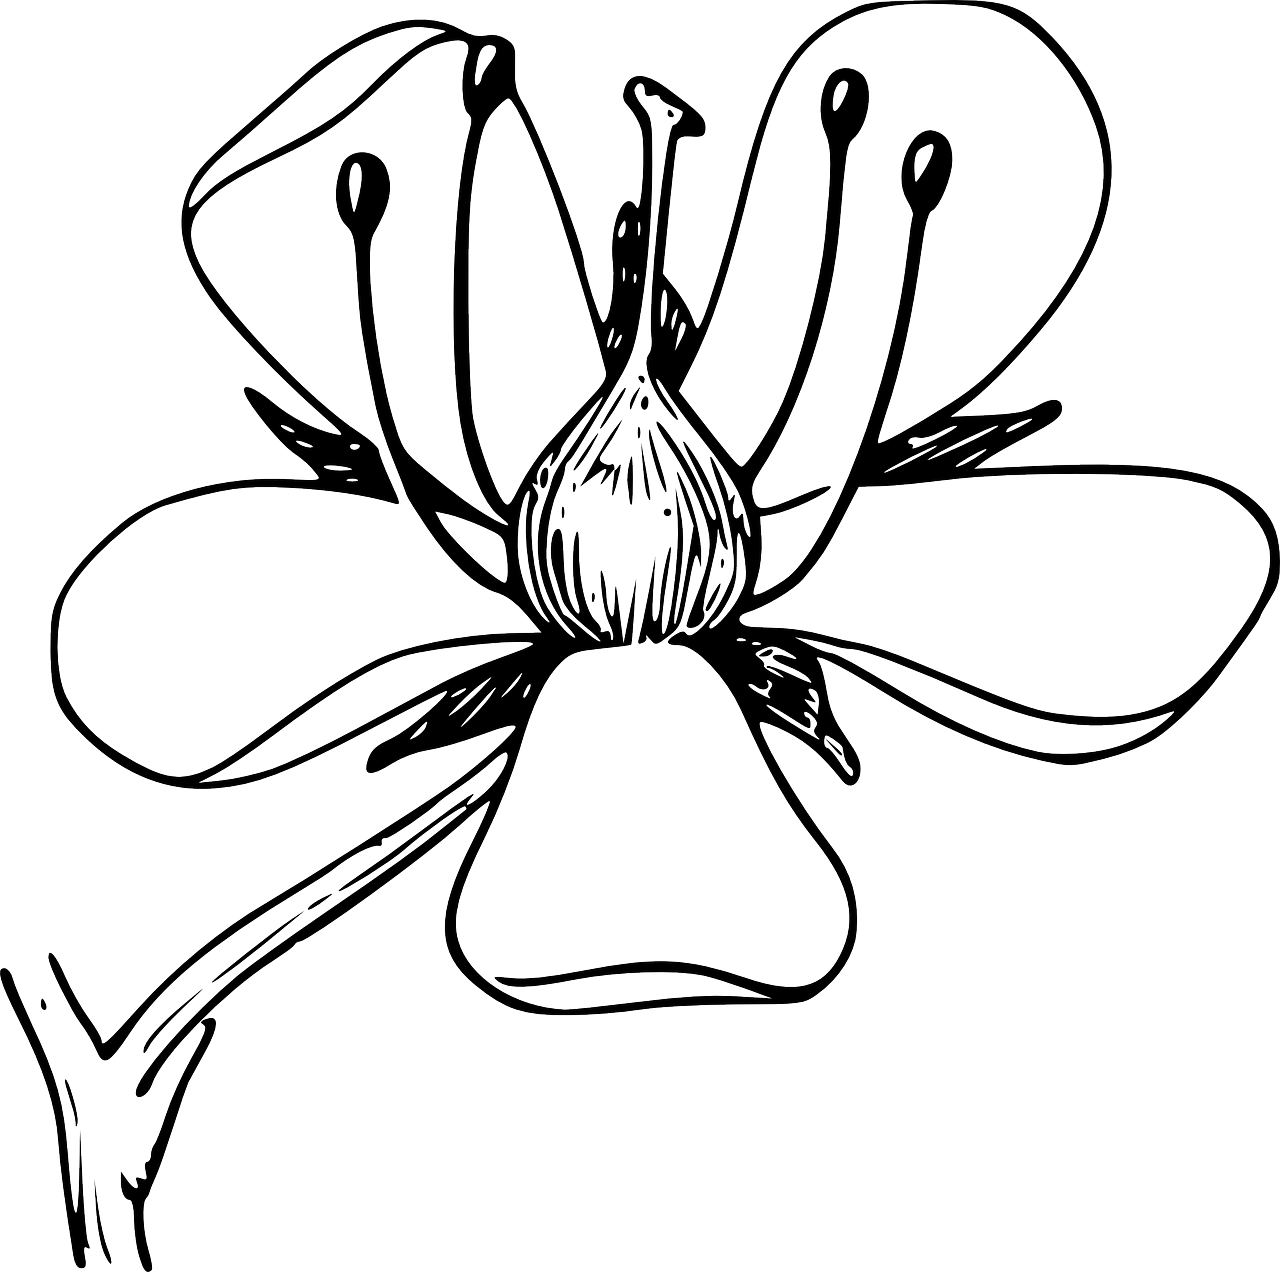 coloring flower png pretty sunflower coloring page free clip art flower png coloring